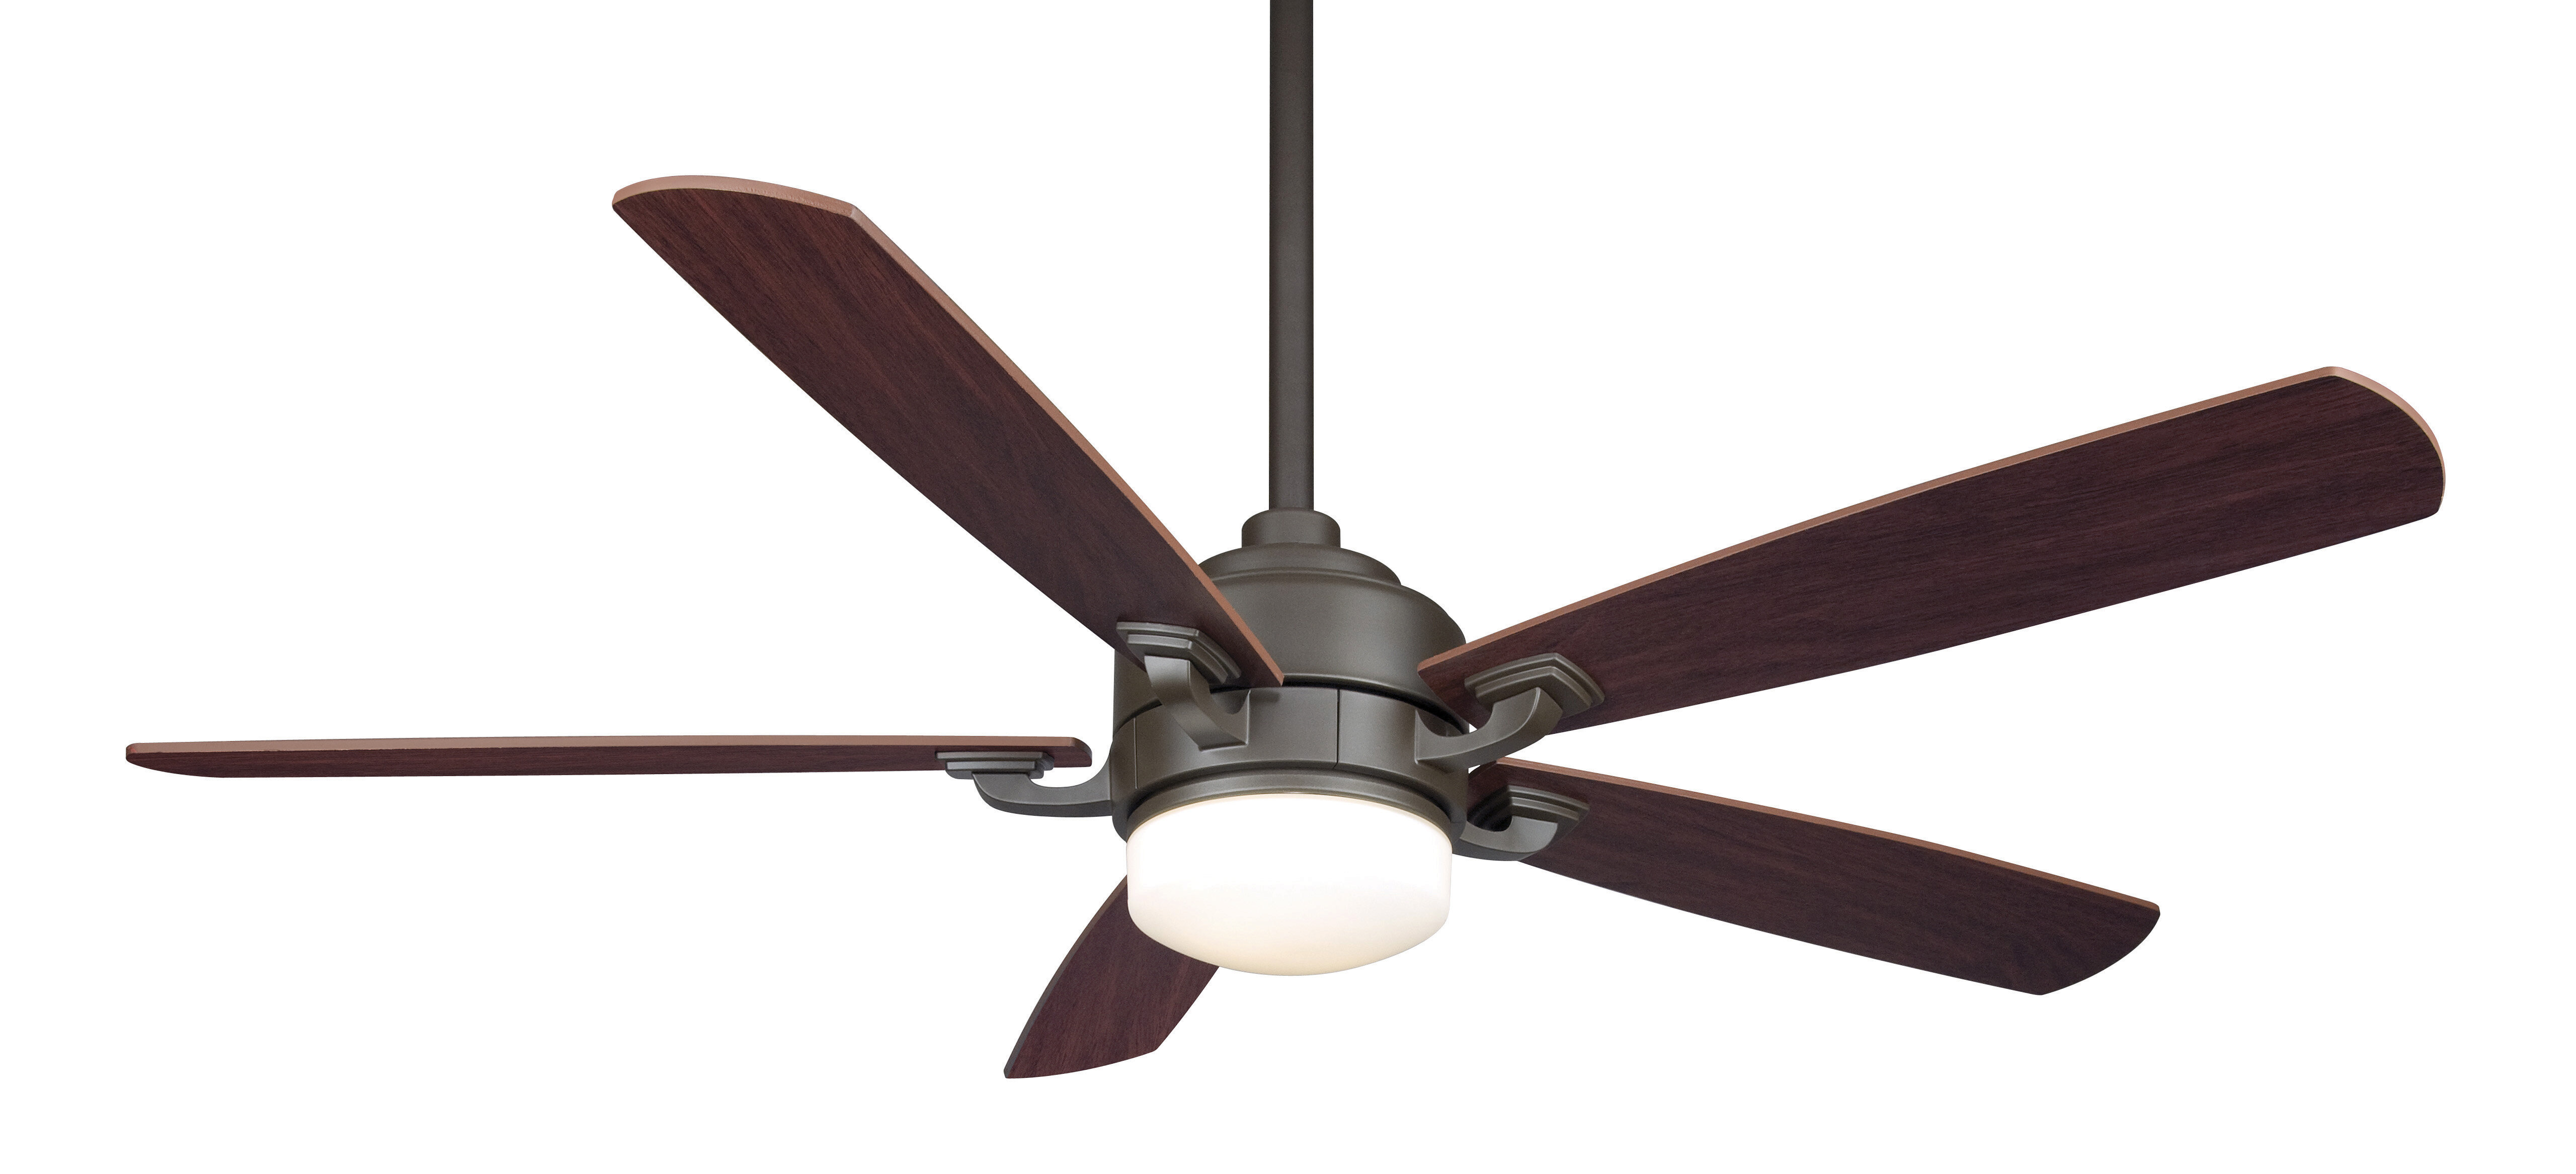 """Fanimation 52"""" Benito 5 Blade LED Ceiling Fan with Remote"""